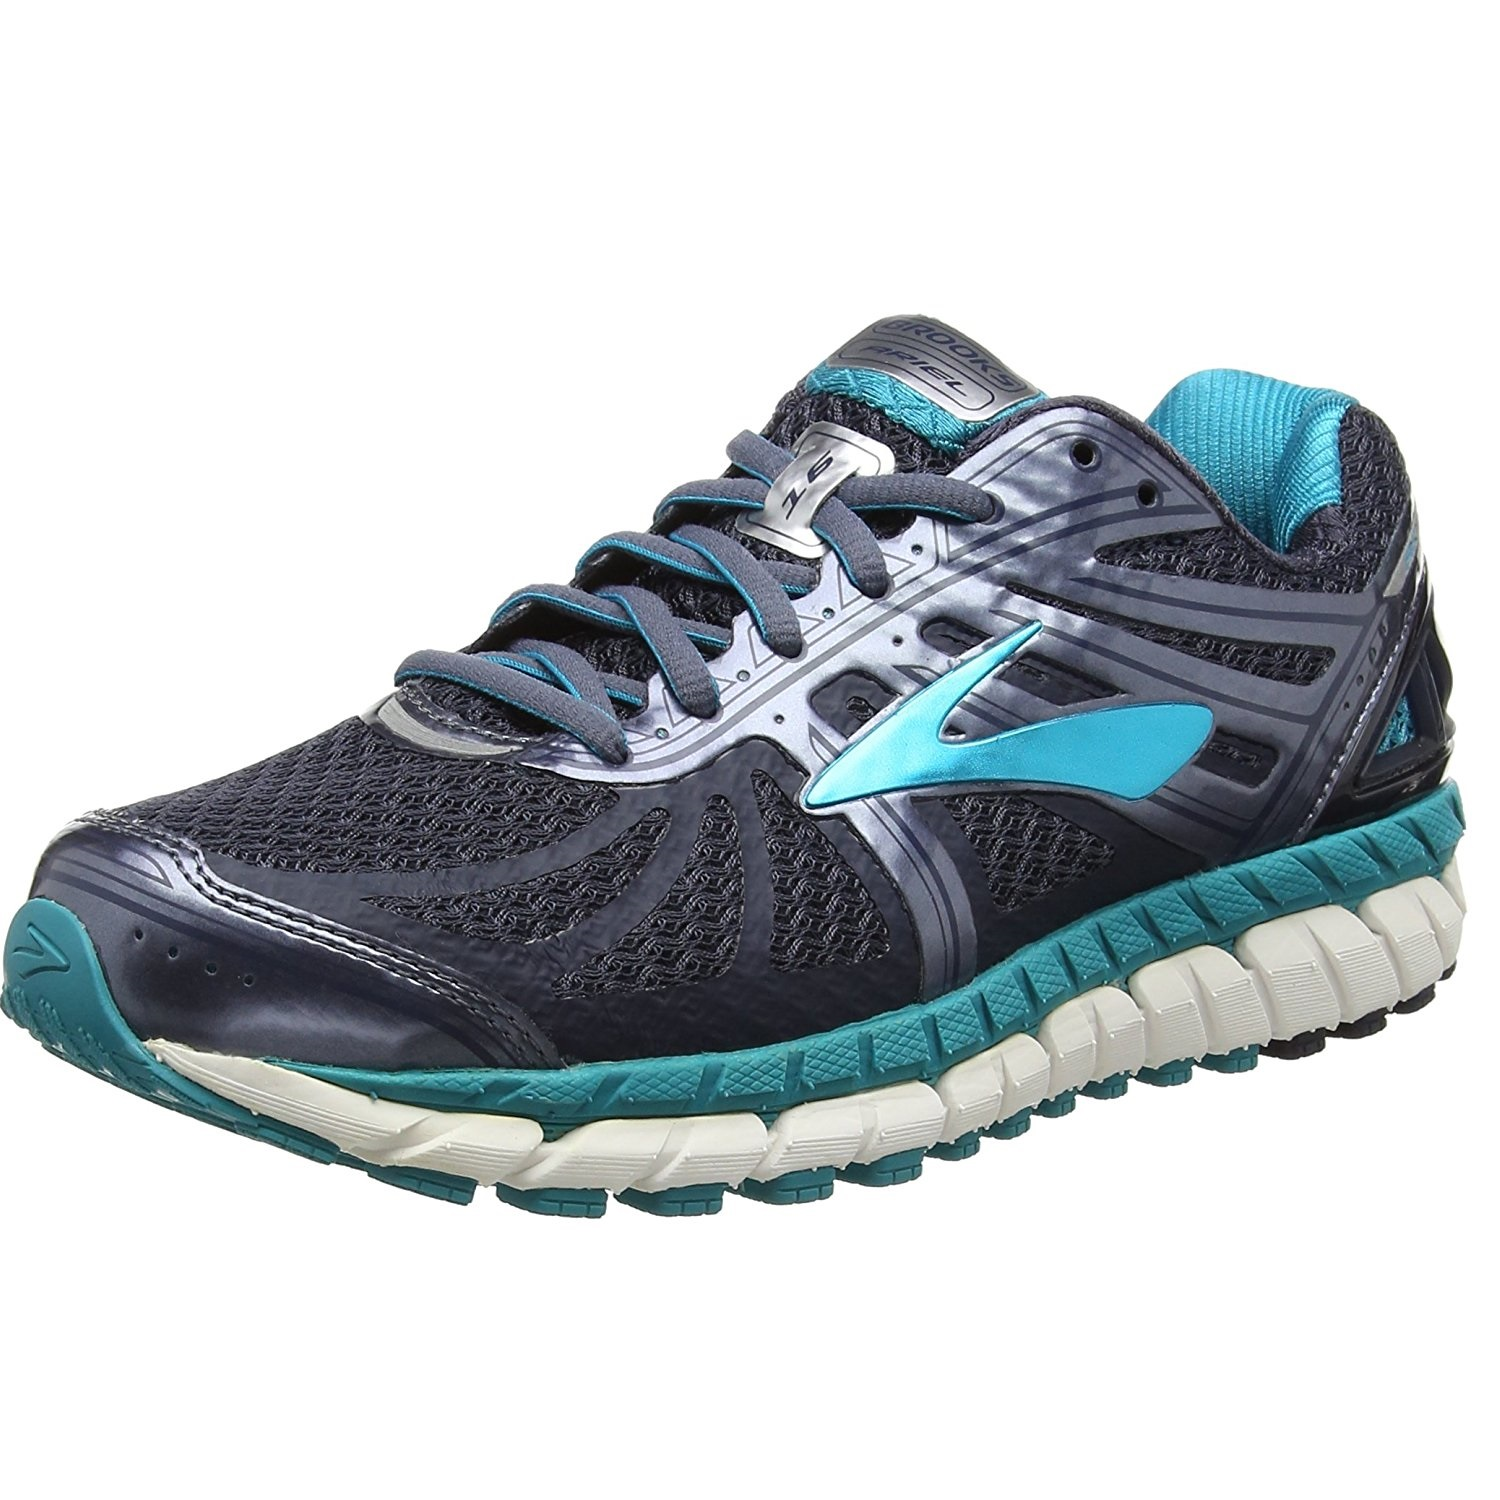 Brooks Ariel 16: To Buy or Not in 2020